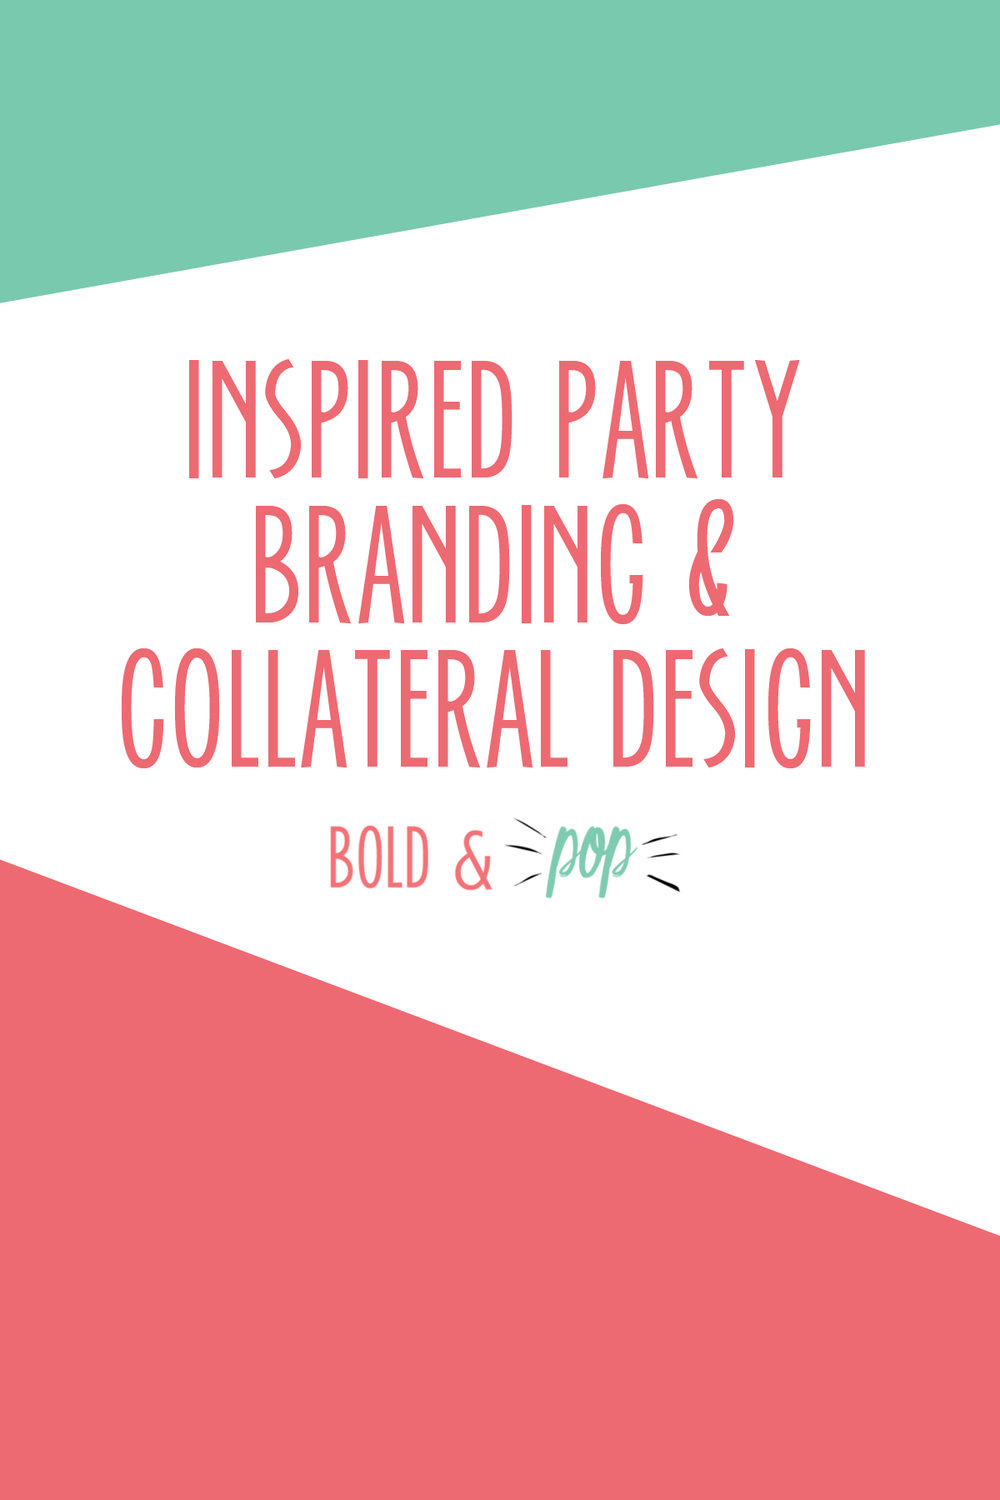 Bold & Pop : Inspired Party Branding & Collateral Design